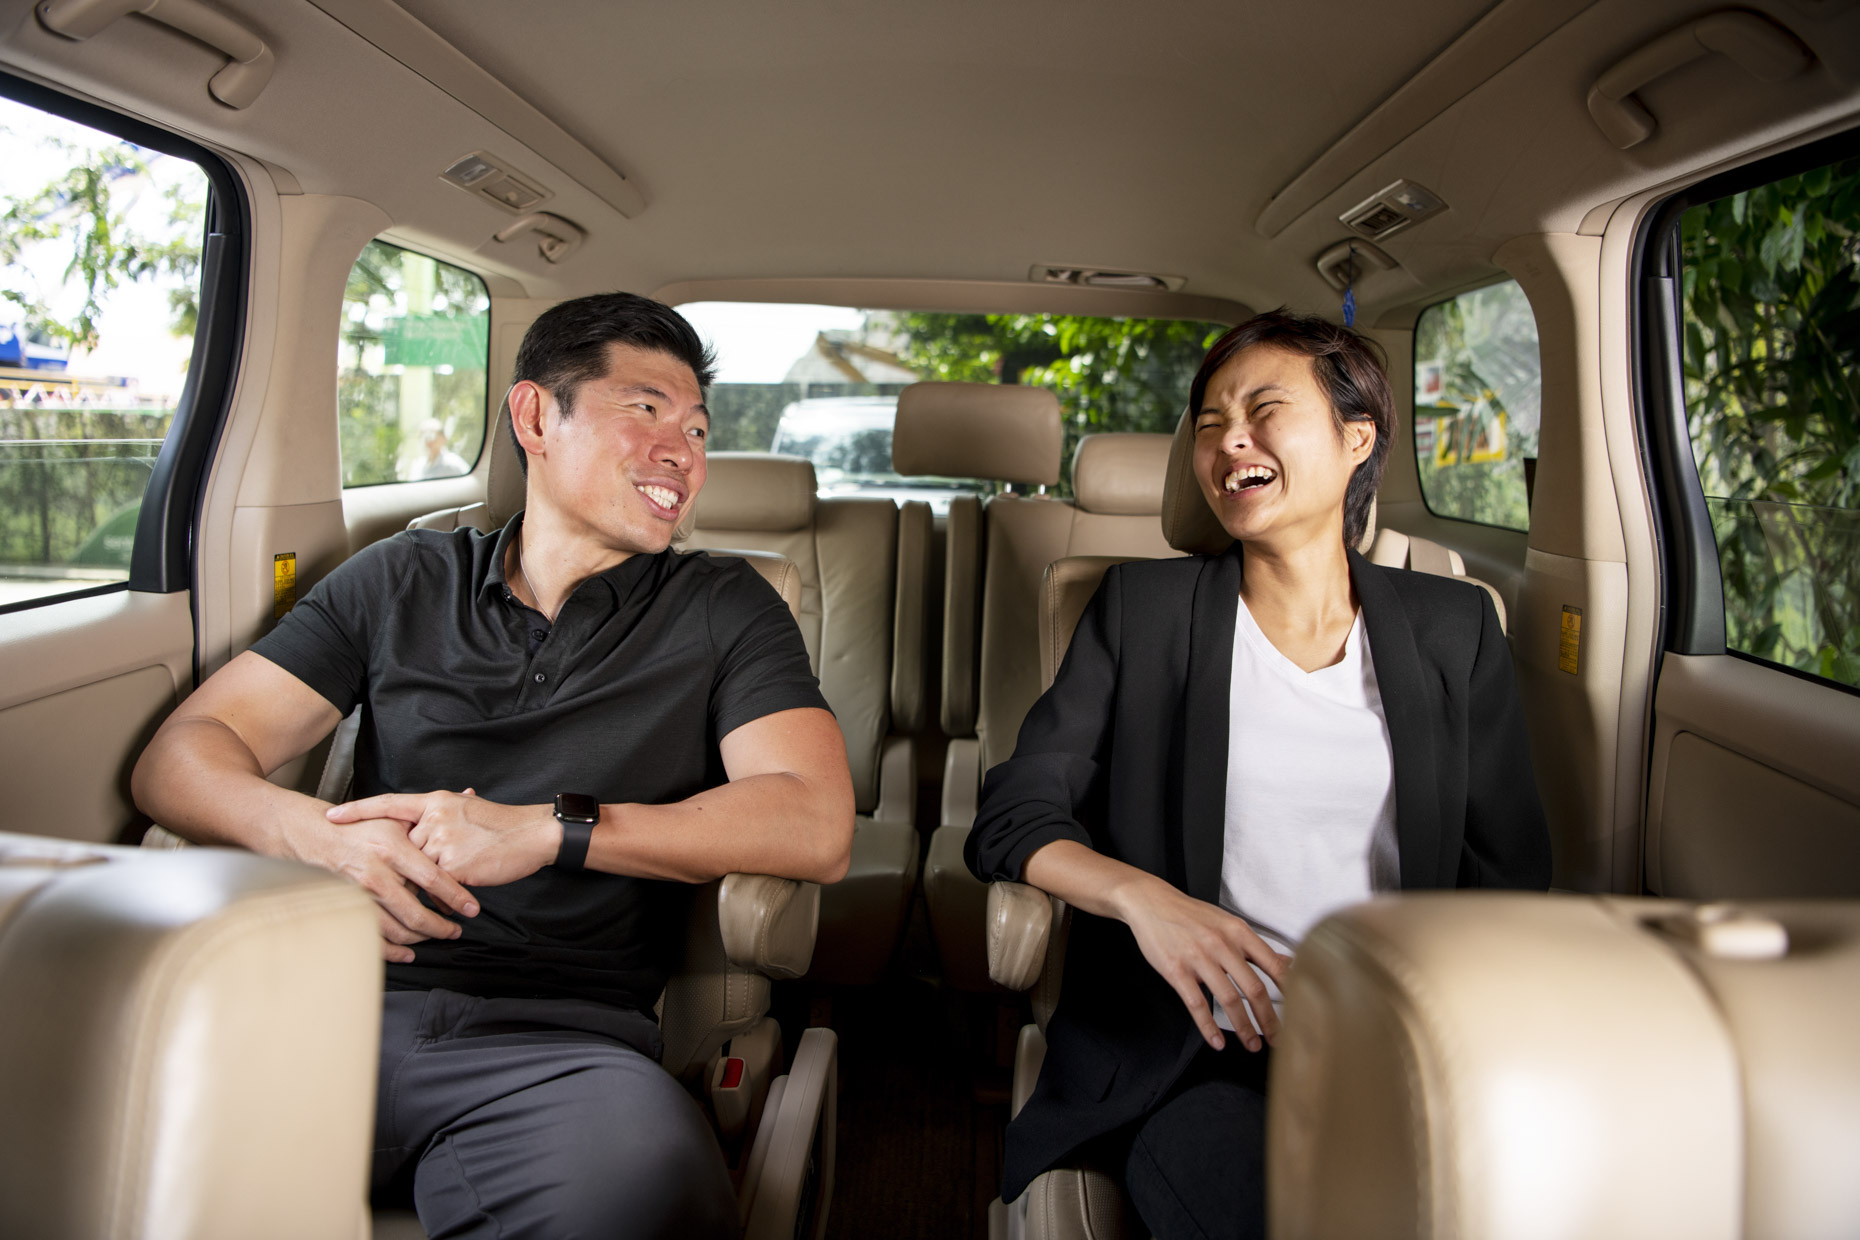 Grab Founders Anthony Tan and Tan Hooi Ling photographed in Singapore